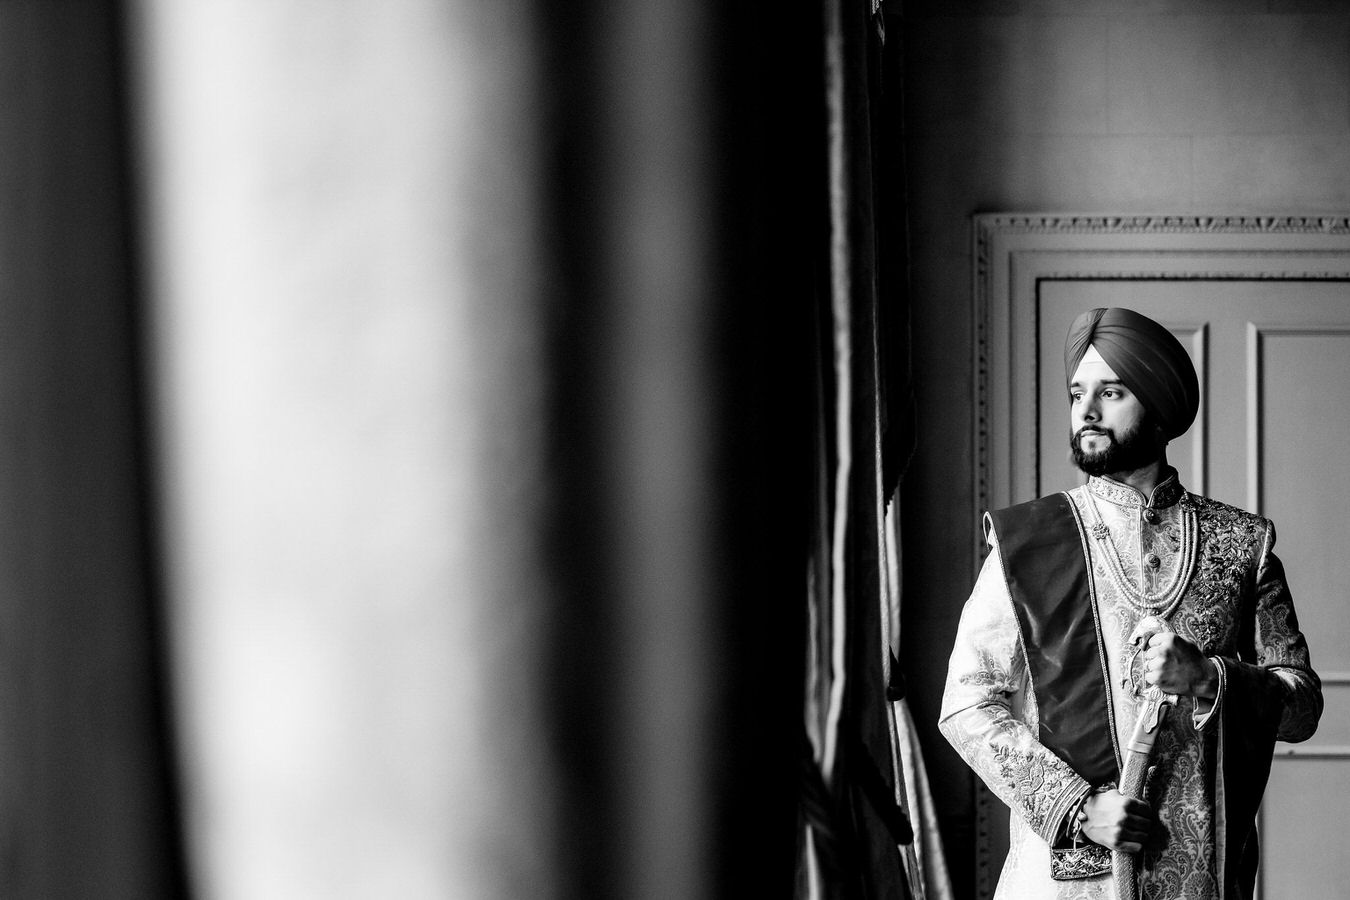 Sikh wedding black and white photography of a groom with kirpan in his hands and a turban looking at his right.